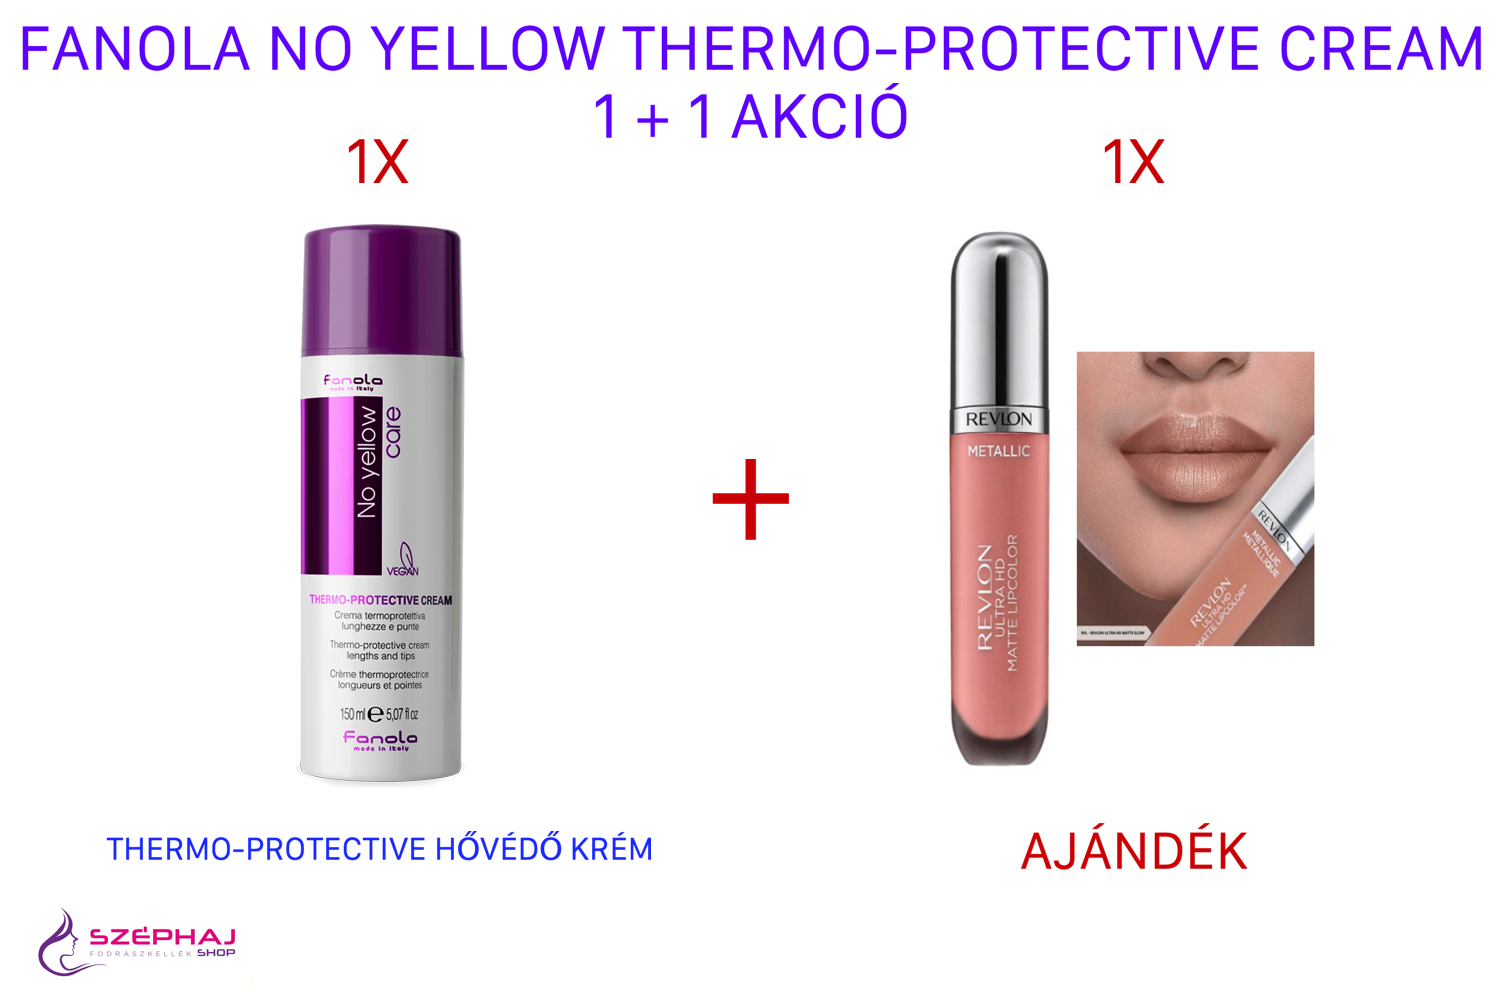 FANOLA No Yellow Thermo-Protective Cream 150 ml 1+1 AKCIÓ